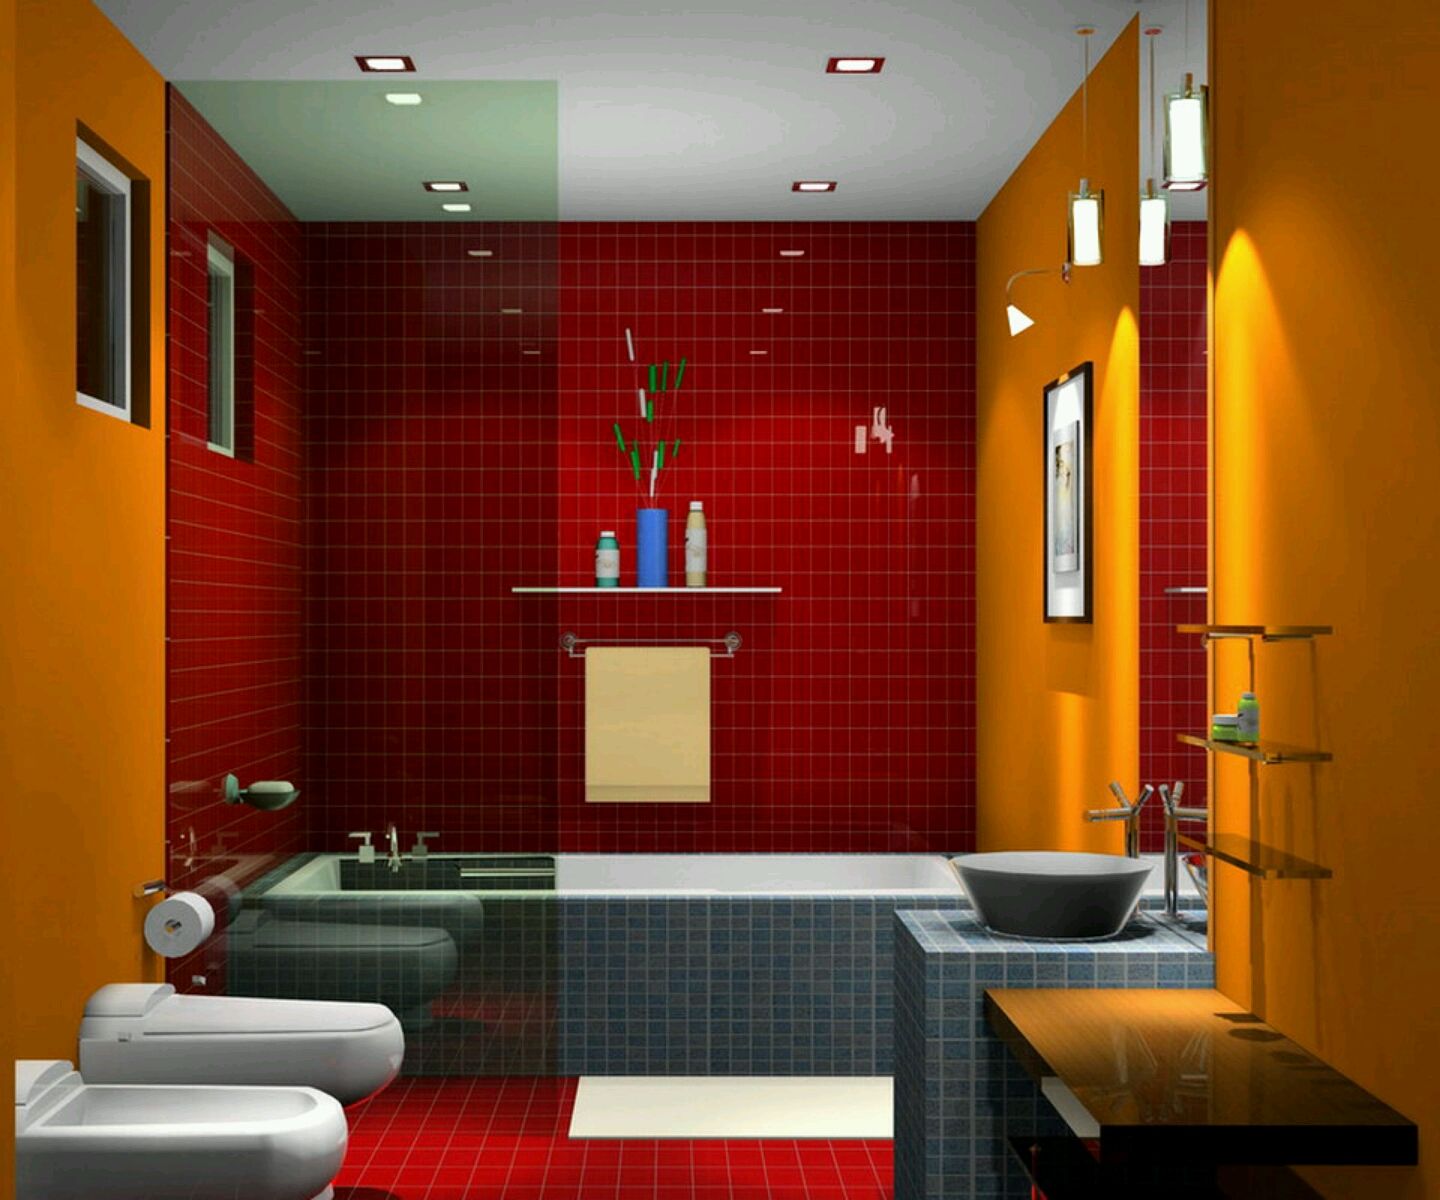 New home designs latest luxury bathrooms designs ideas for Latest small bathroom designs